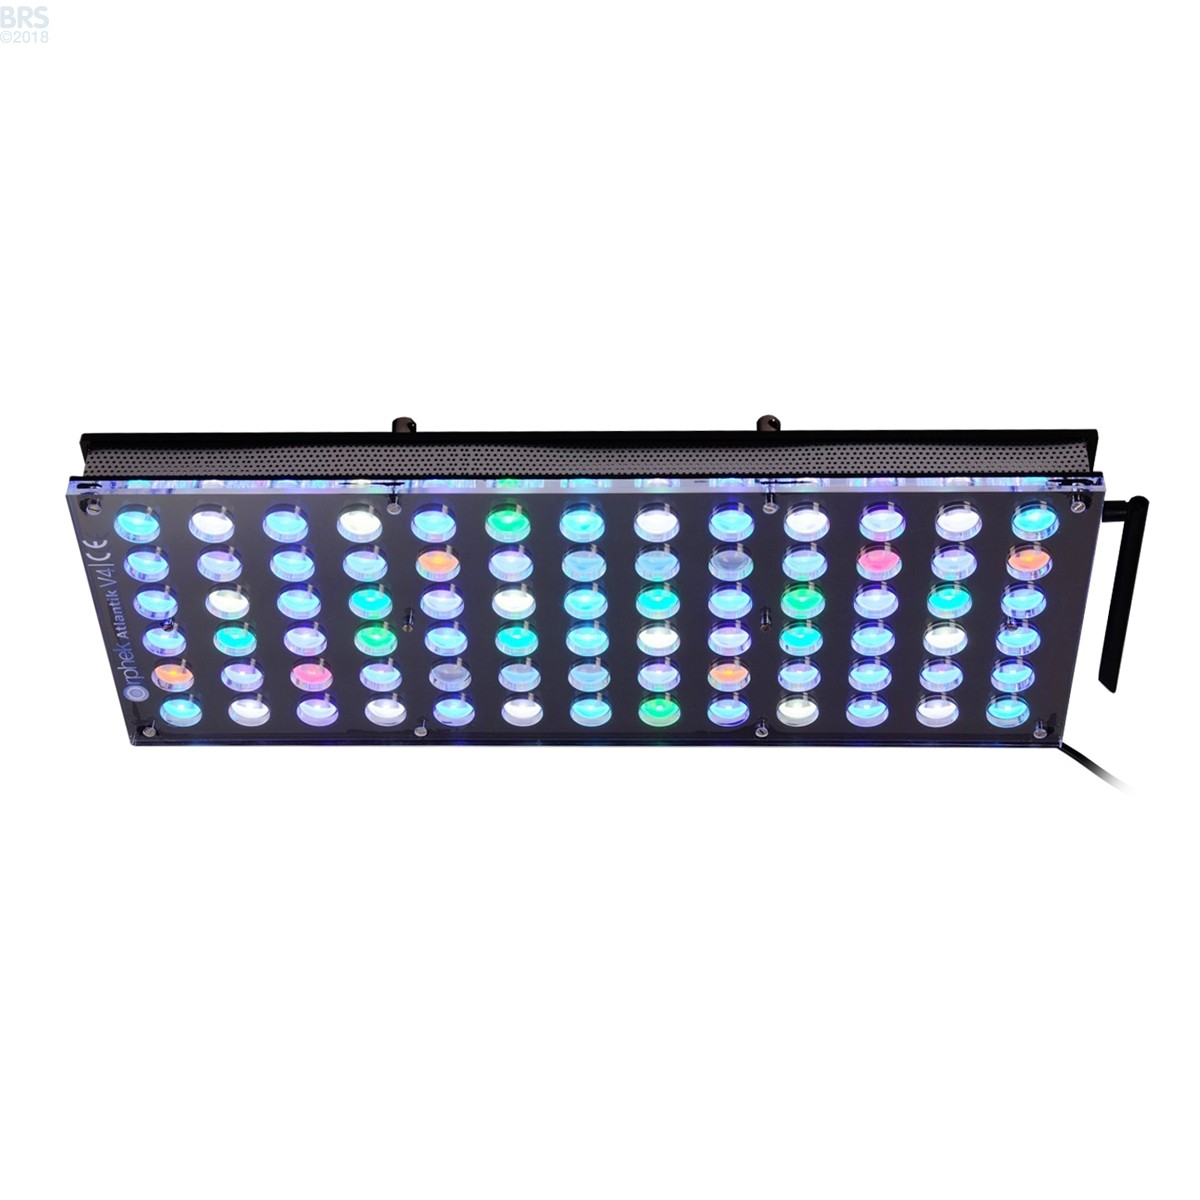 Atlantik v4 led light fixture orphek bulk reef supply atlantik v4 led light fixture orphek arubaitofo Image collections